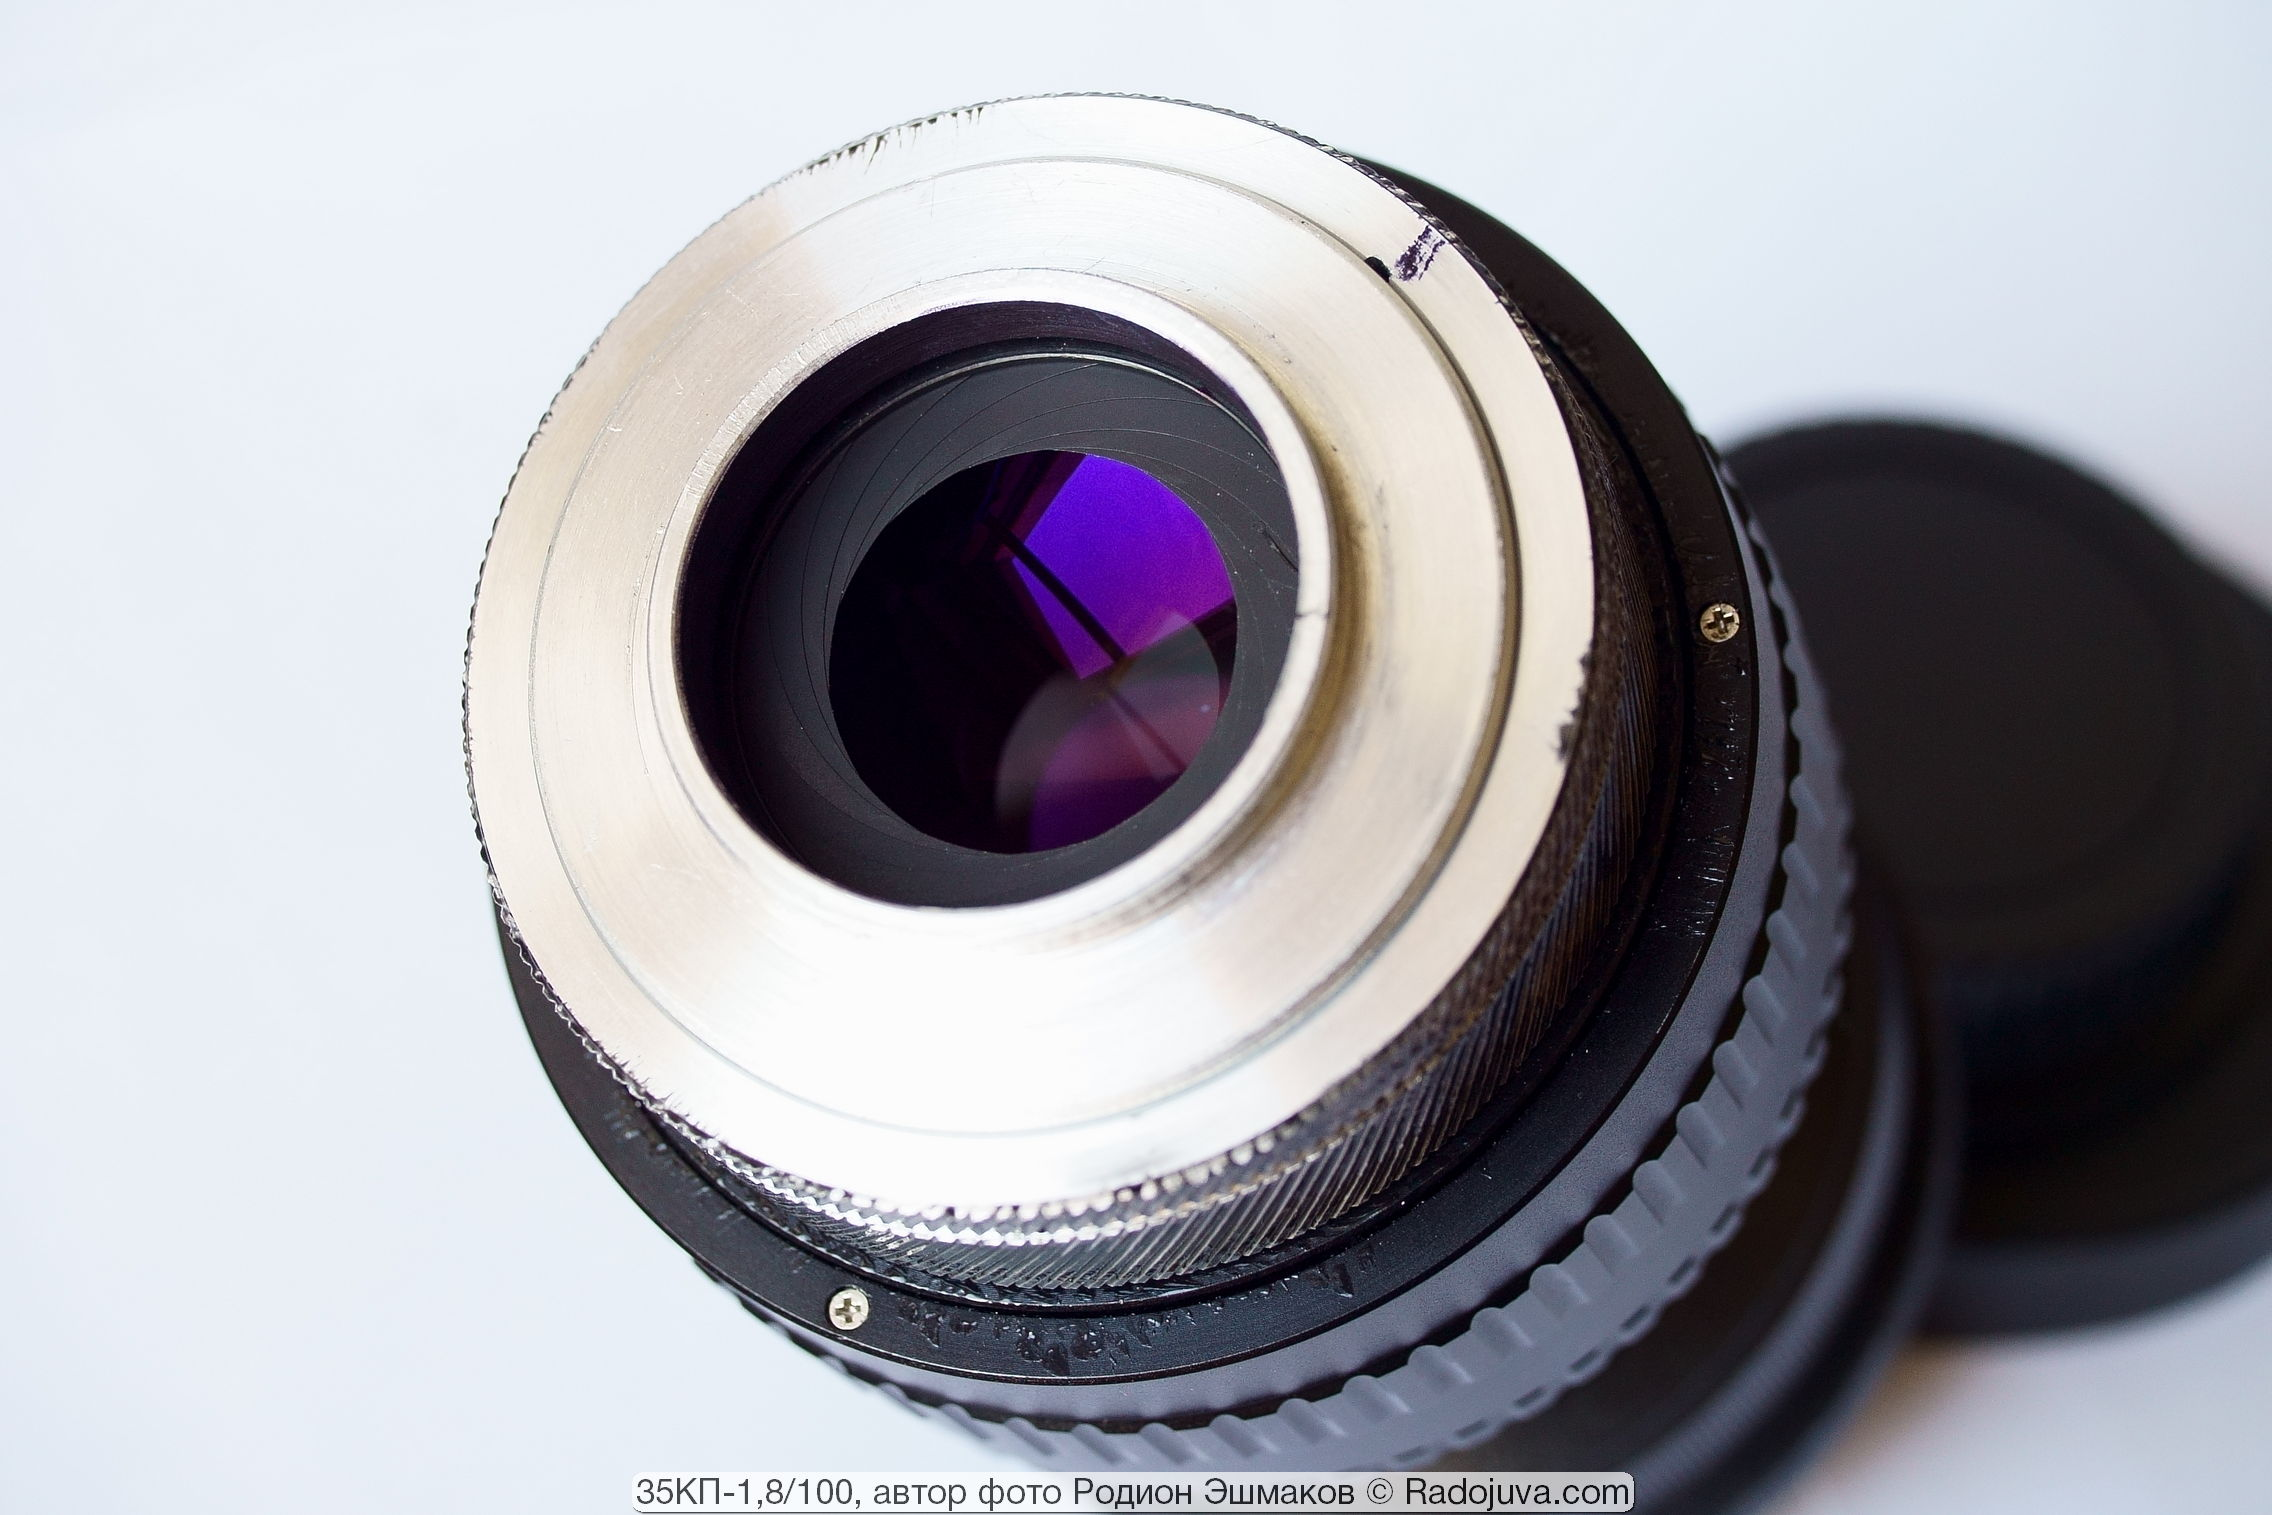 The second aperture is the secret ingredient for creative ideas.